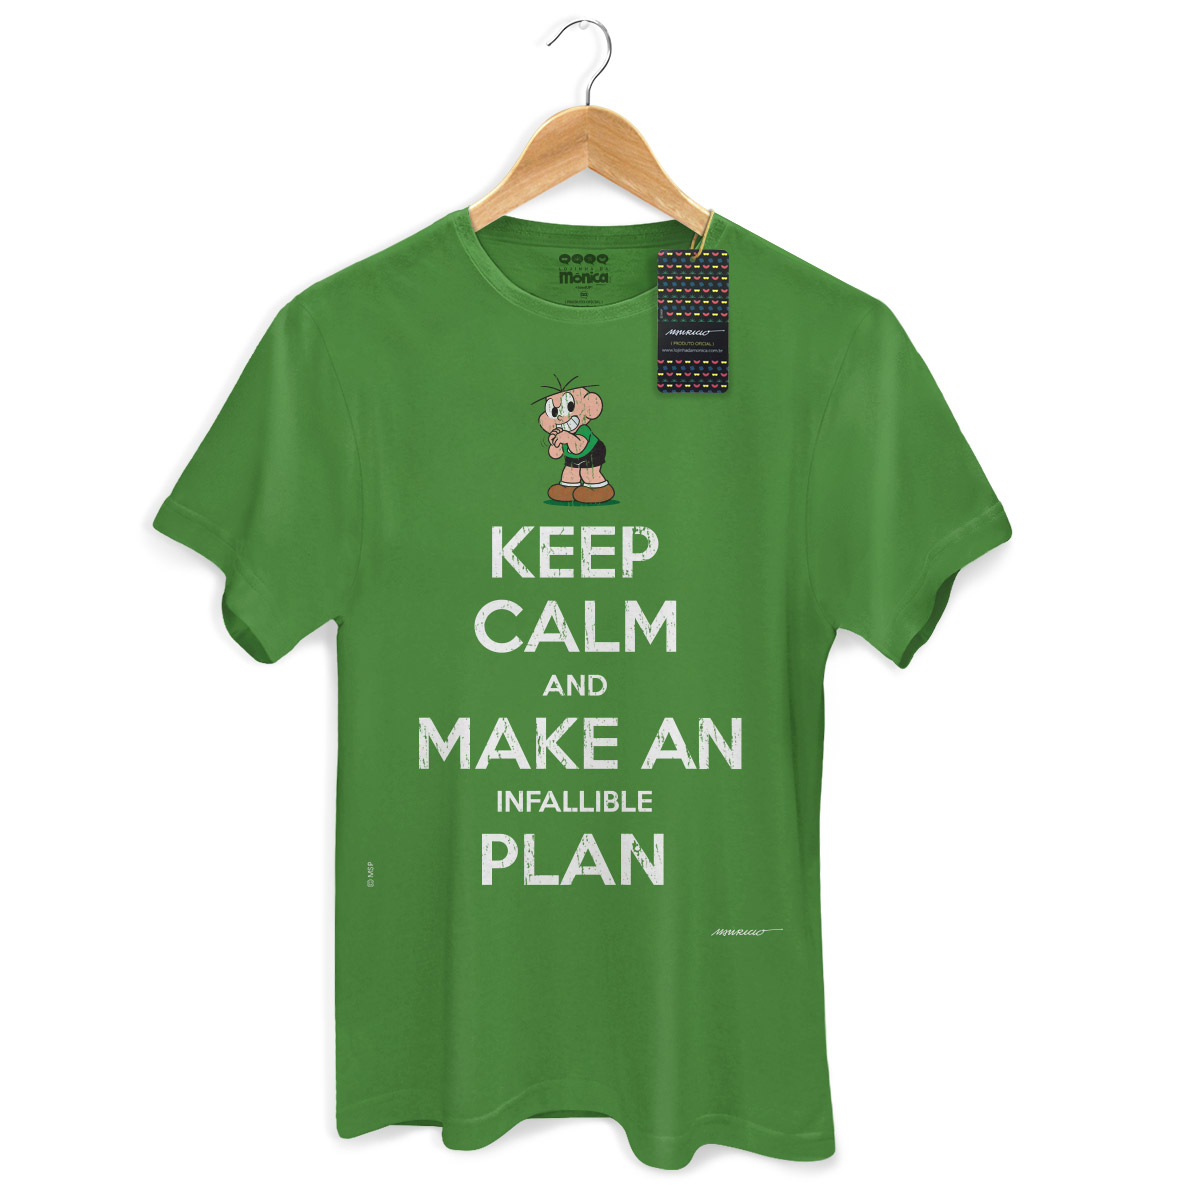 Camiseta Masculina Turma Da M�nica Cool Keep Calm And Make Infallible Plan